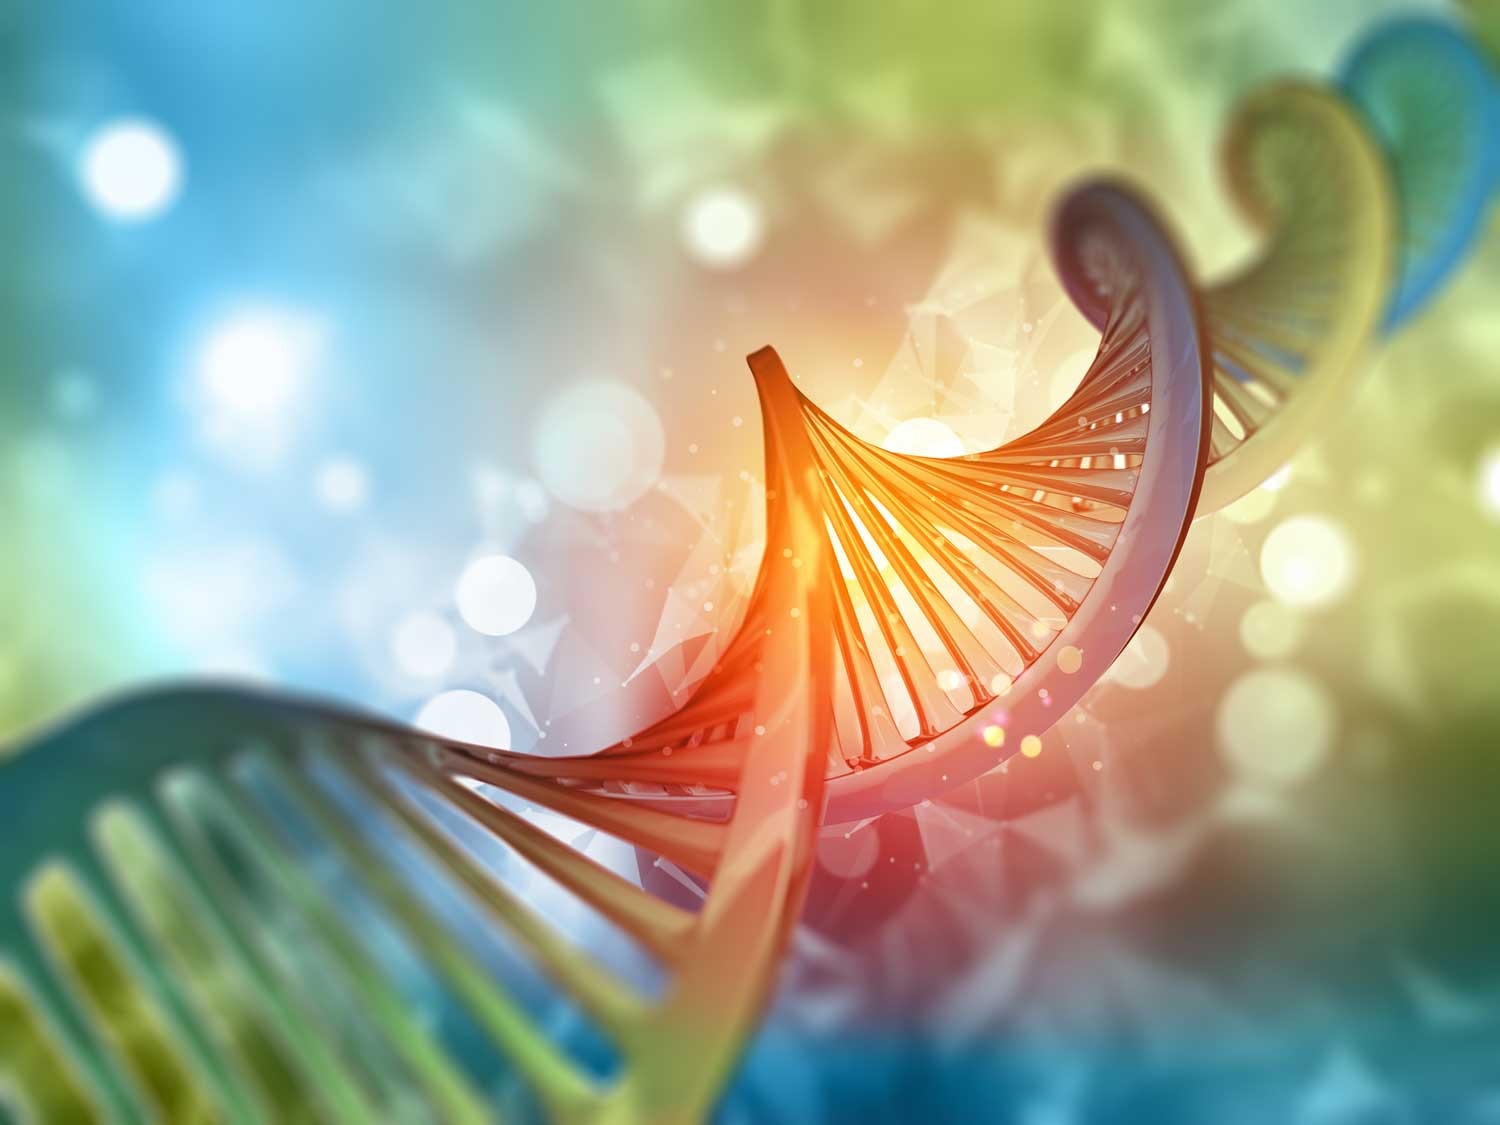 is misophonia a genetic trait dna tests suggest there may